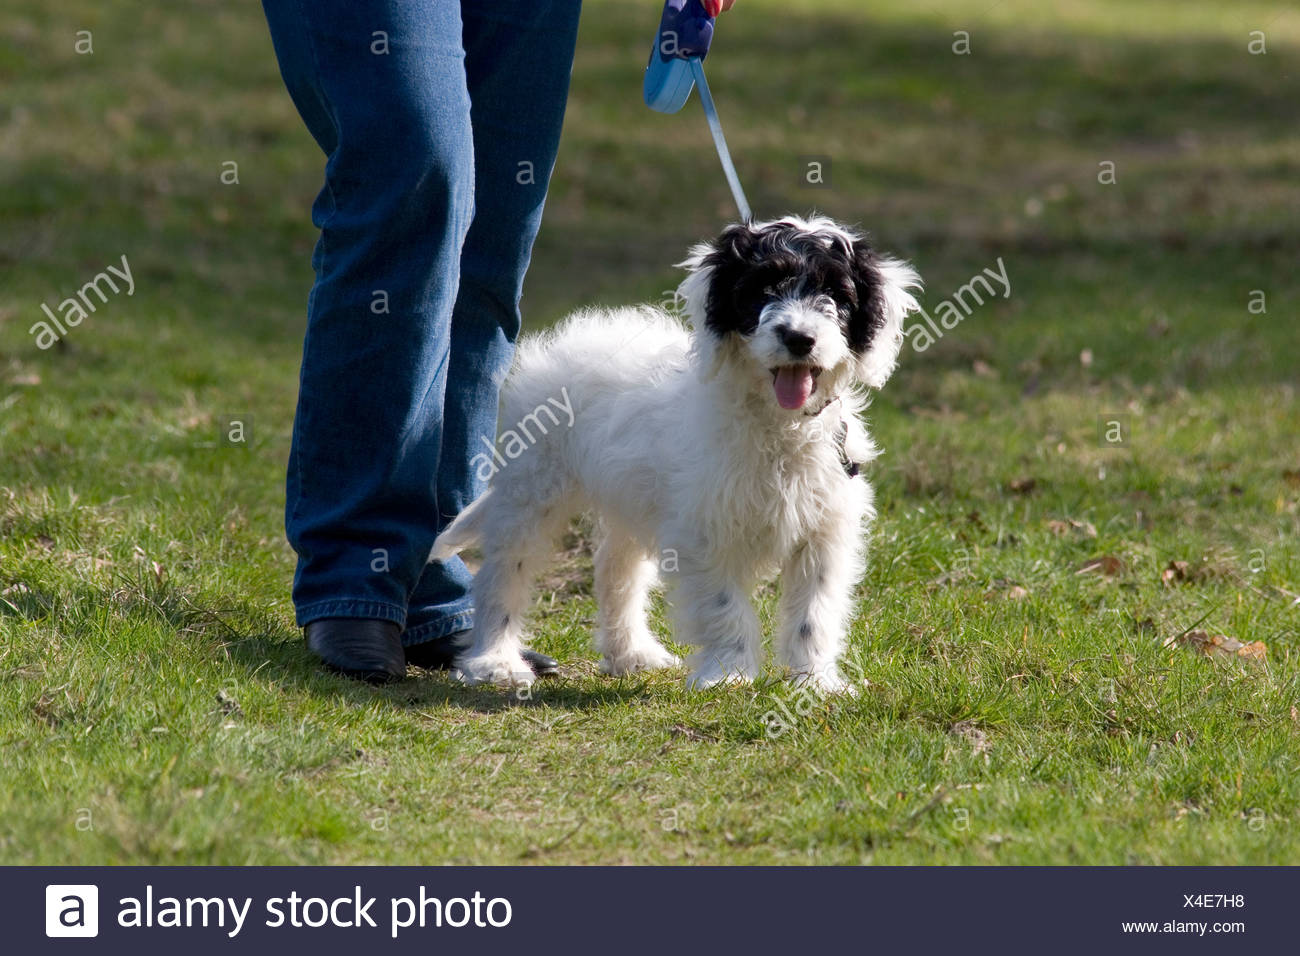 owner with cockerpoo pup on lead - Stock Image